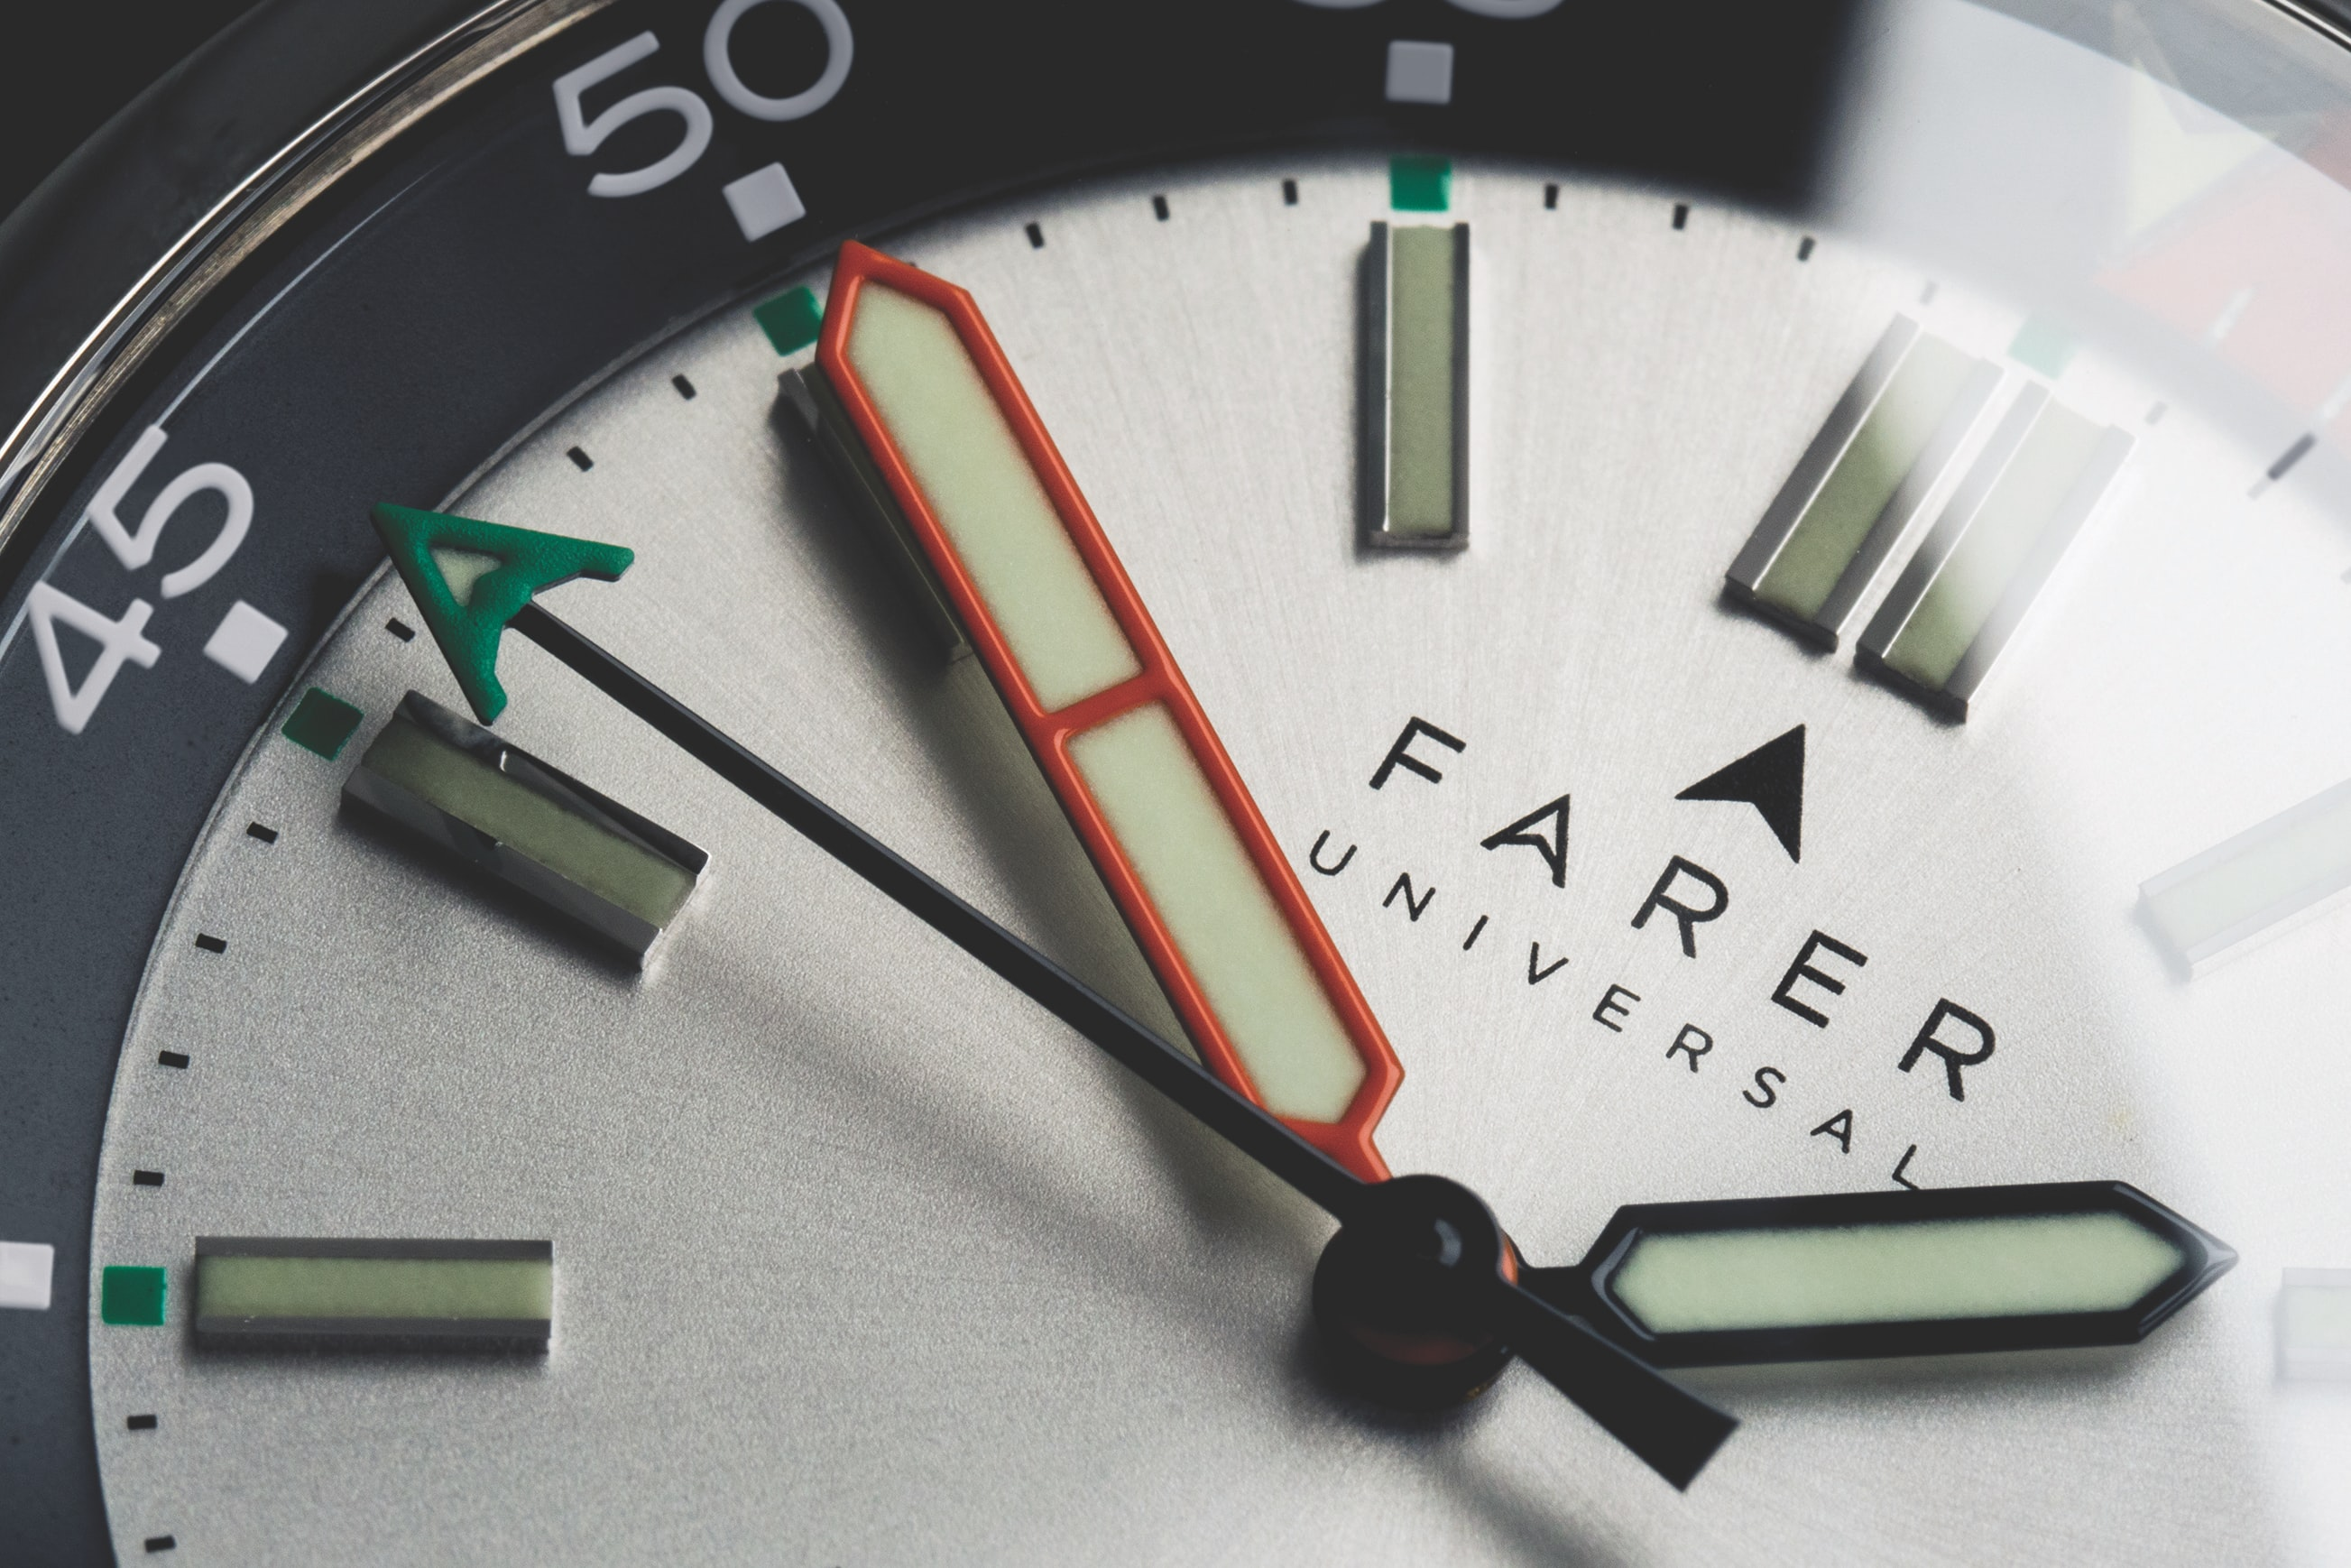 Farer Aqua Compressor hands Introducing: Farer Aqua Compressor Automatic Dive Watches Introducing: Farer Aqua Compressor Automatic Dive Watches Farer Aqua Compressor 7